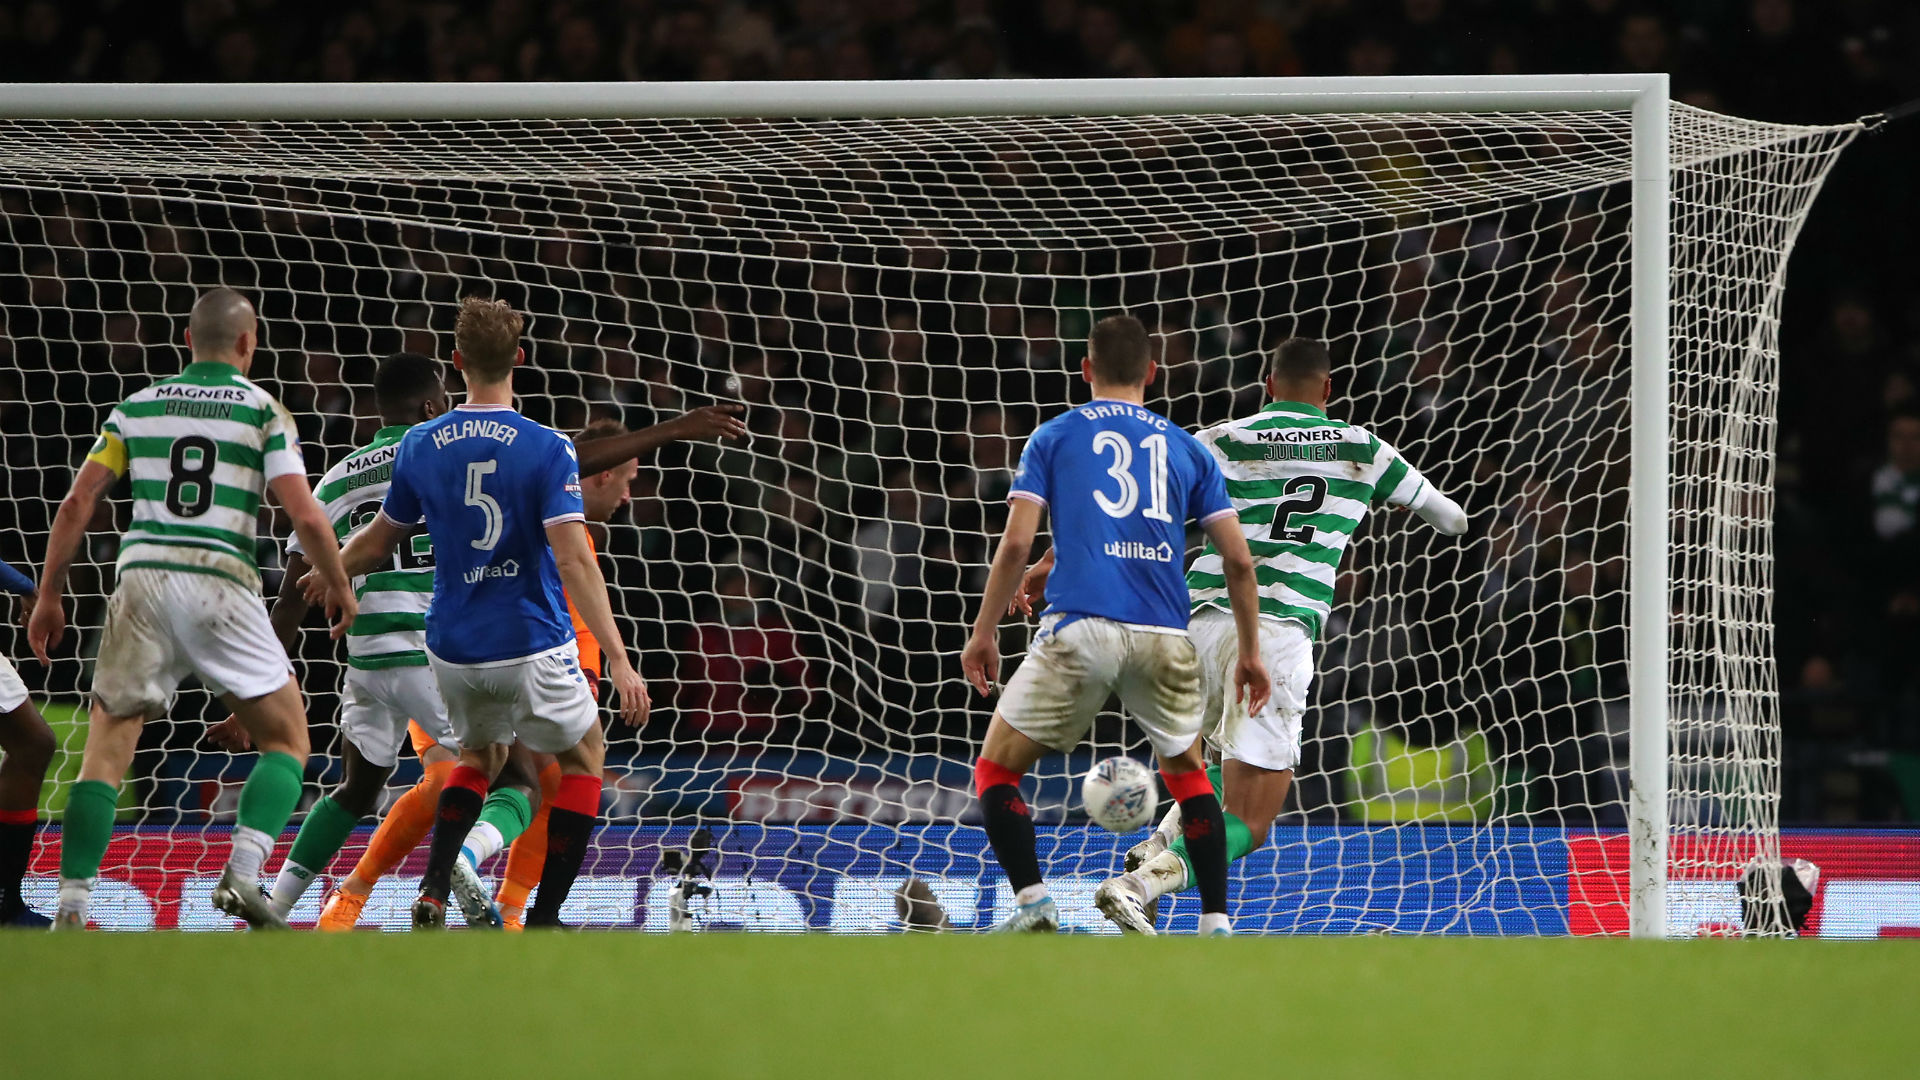 Rangers 0-1 Celtic: Lennon's side claim 10th consecutive domestic trophy